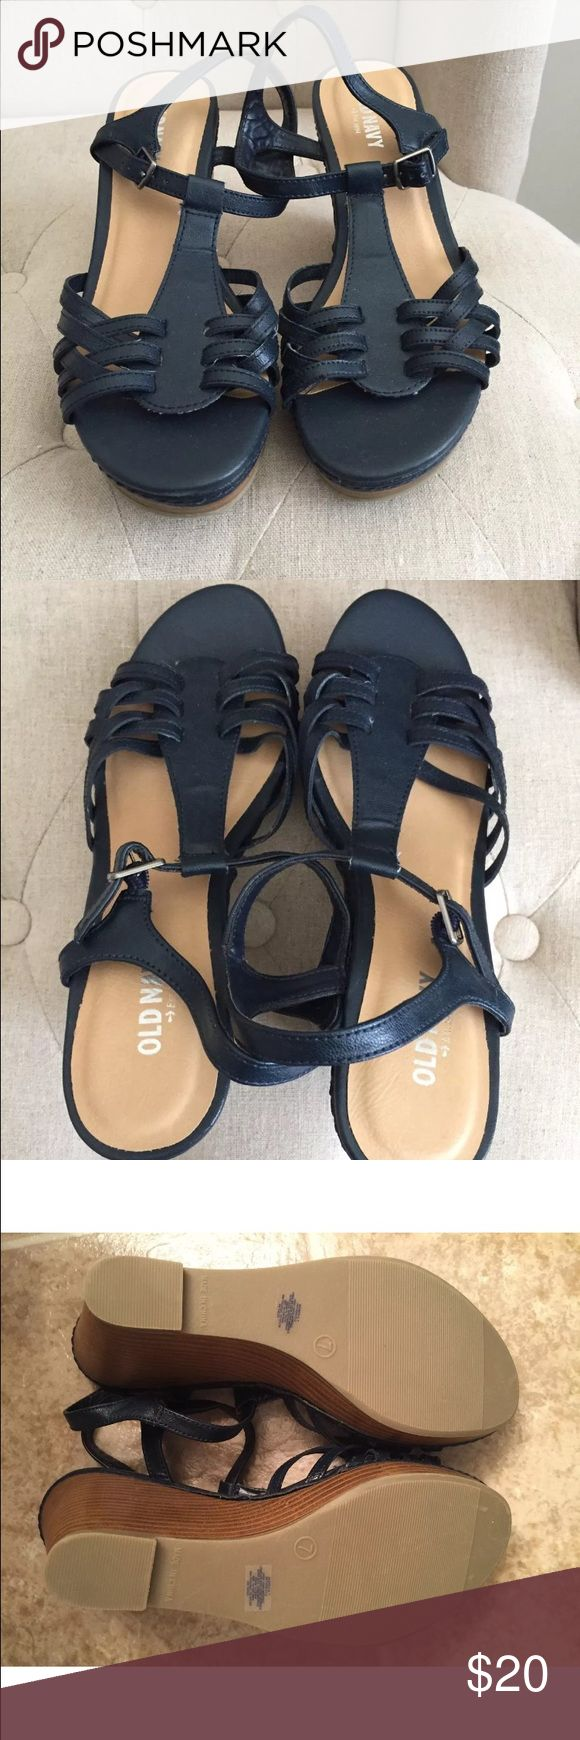 Ladies wedge sandals New, never worn only tried on. Shoes Wedges